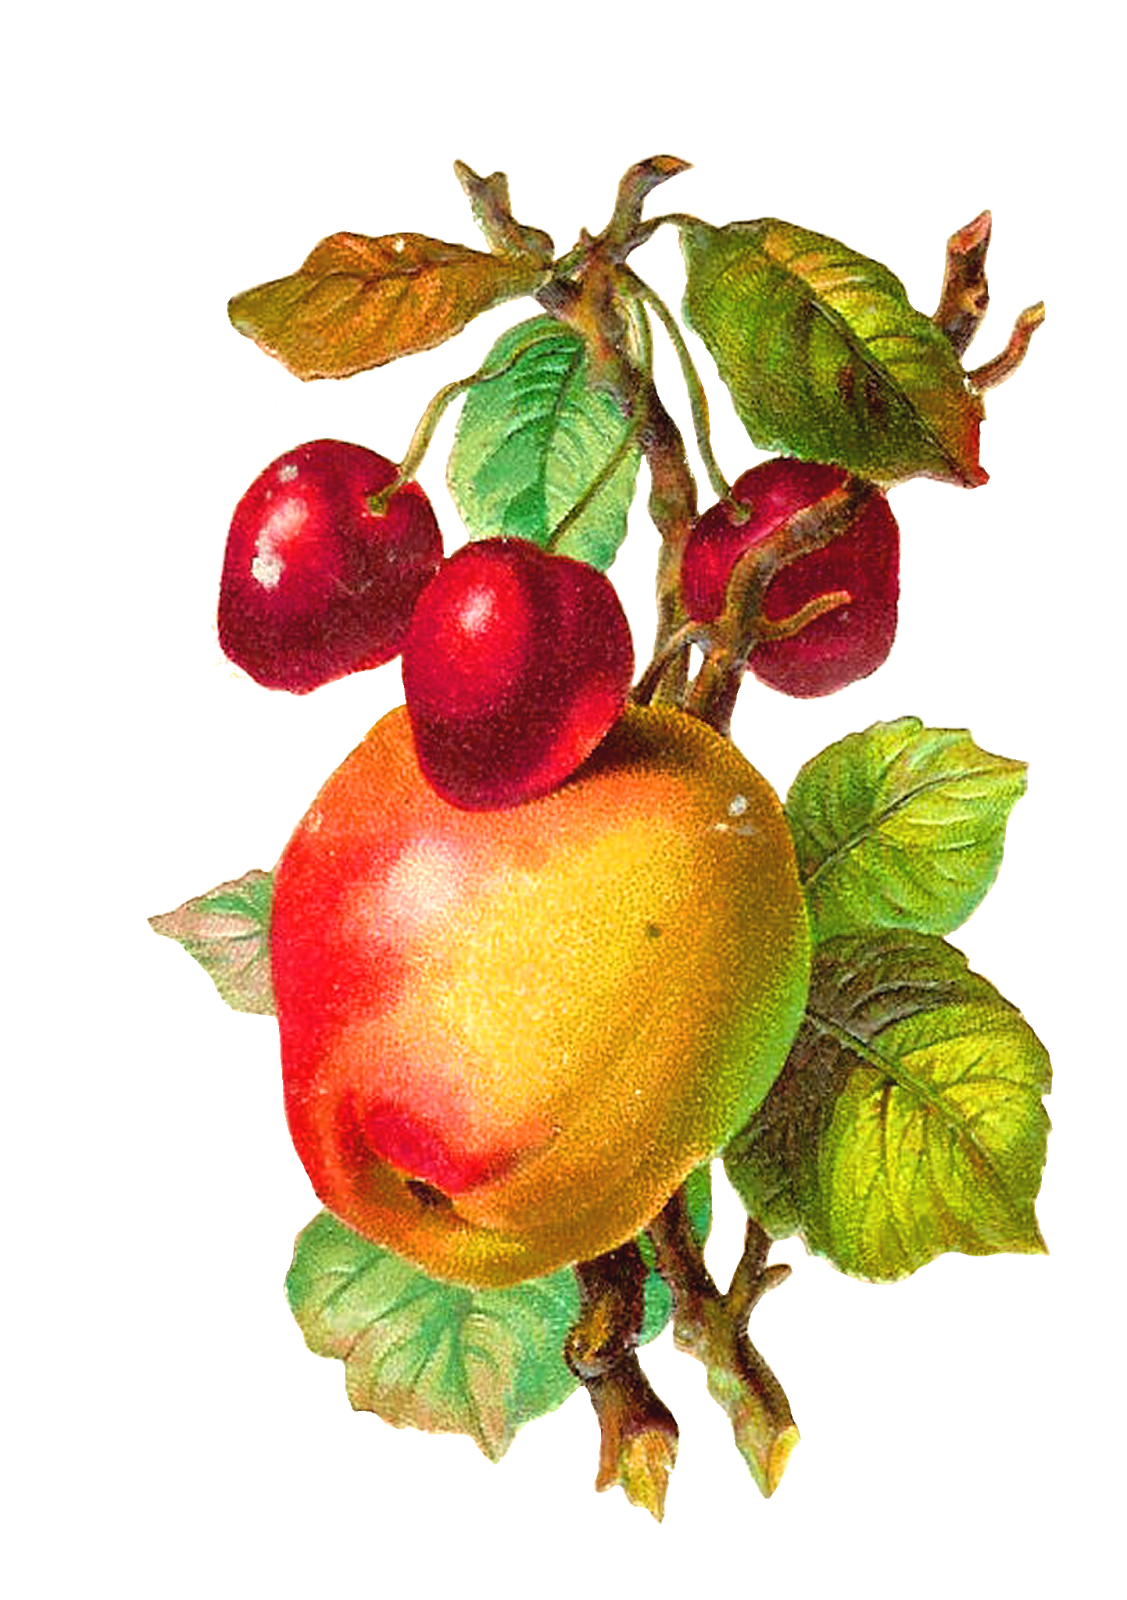 Apple clipart vintage vector freeuse Pin by Mary Barnes-Ekobena on Assorted Colored Clipart (Most are ... vector freeuse